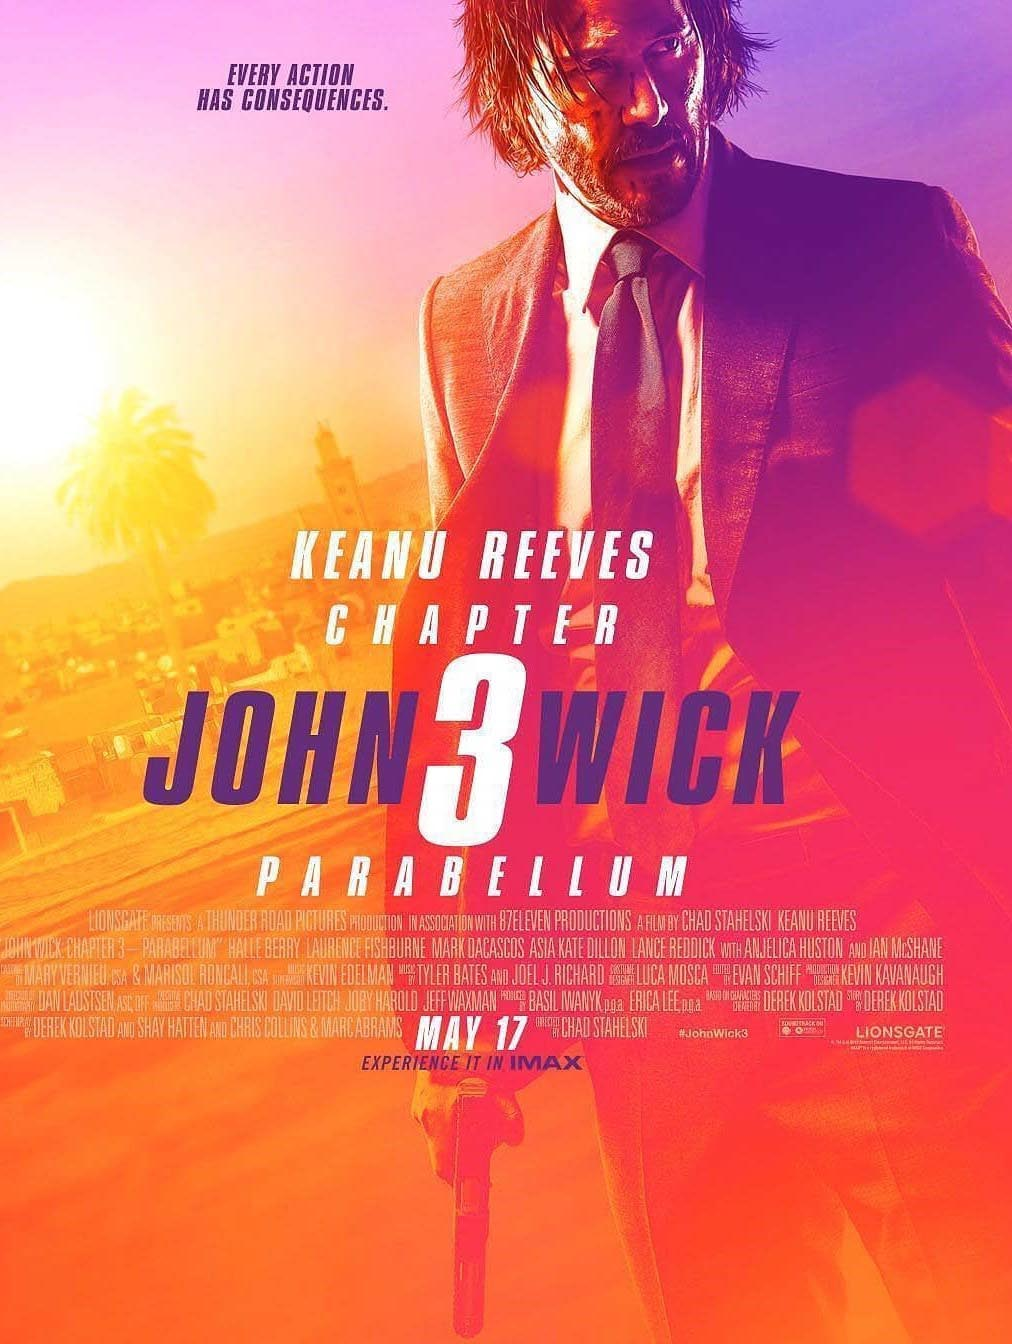 John Wick: Chapter 3 - Parabellum (2018) Full Movie Free Online